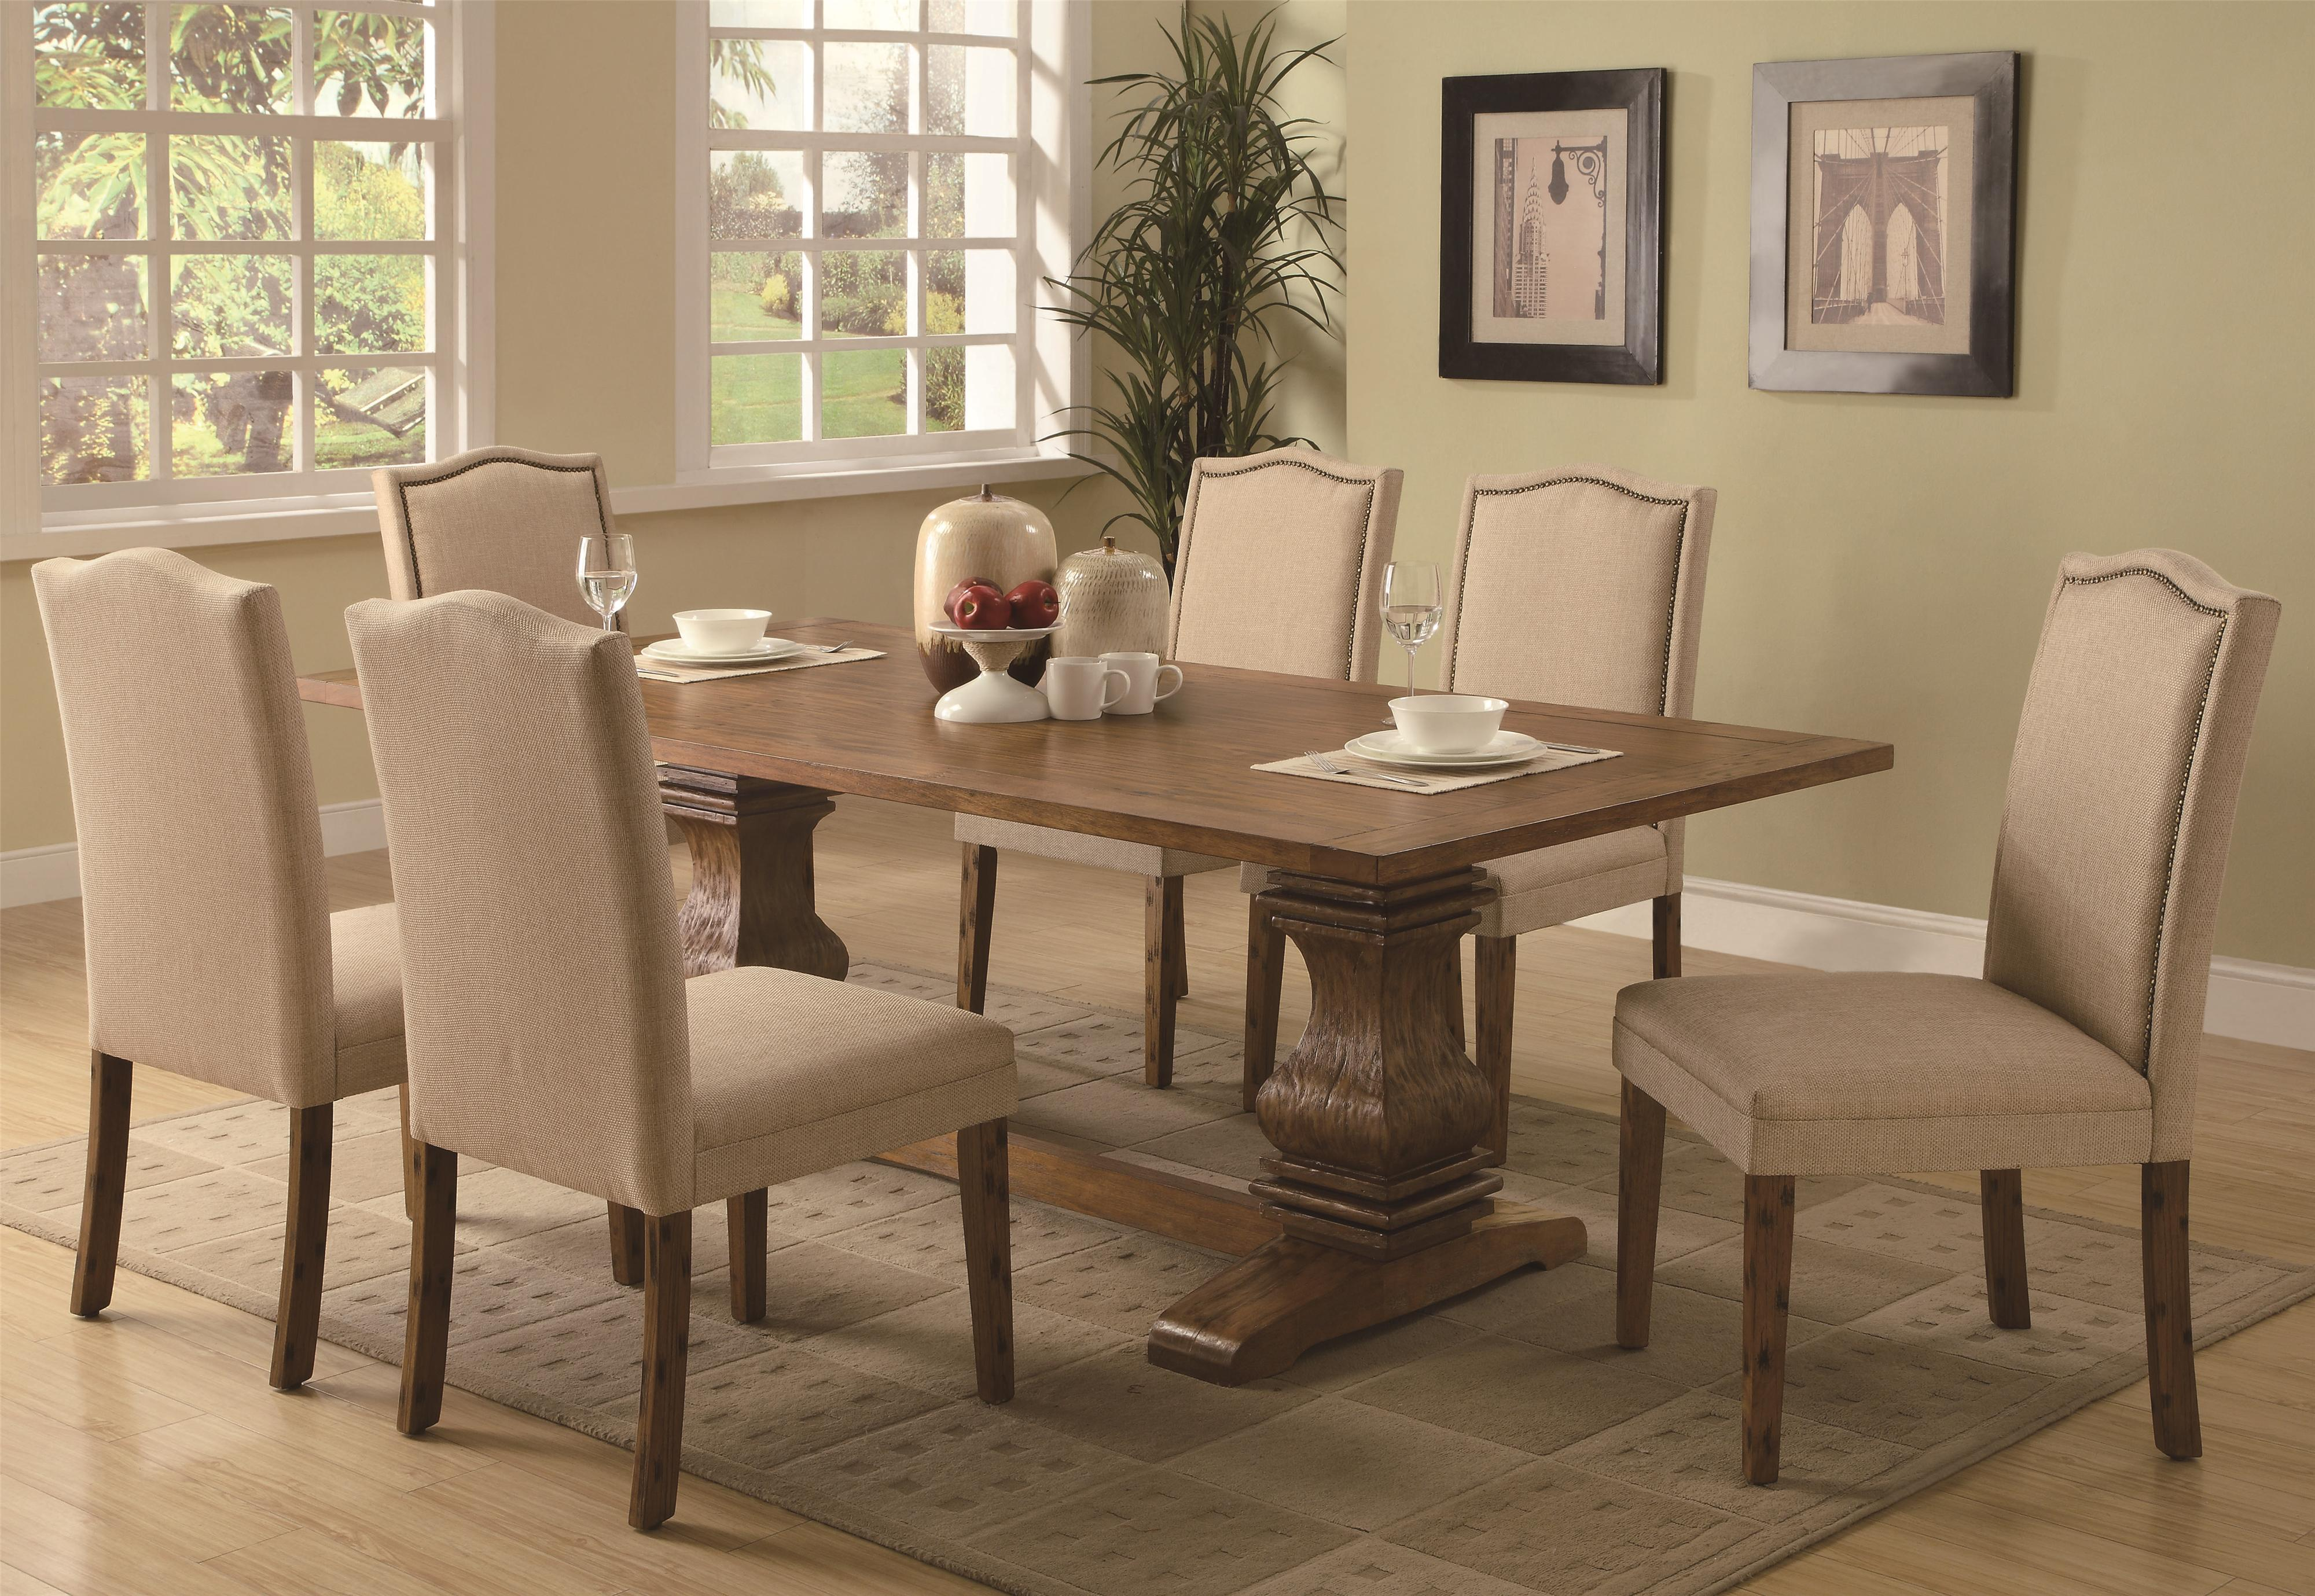 parson chairs oakland raiders chair coaster parkins 7 piece dining table and set value